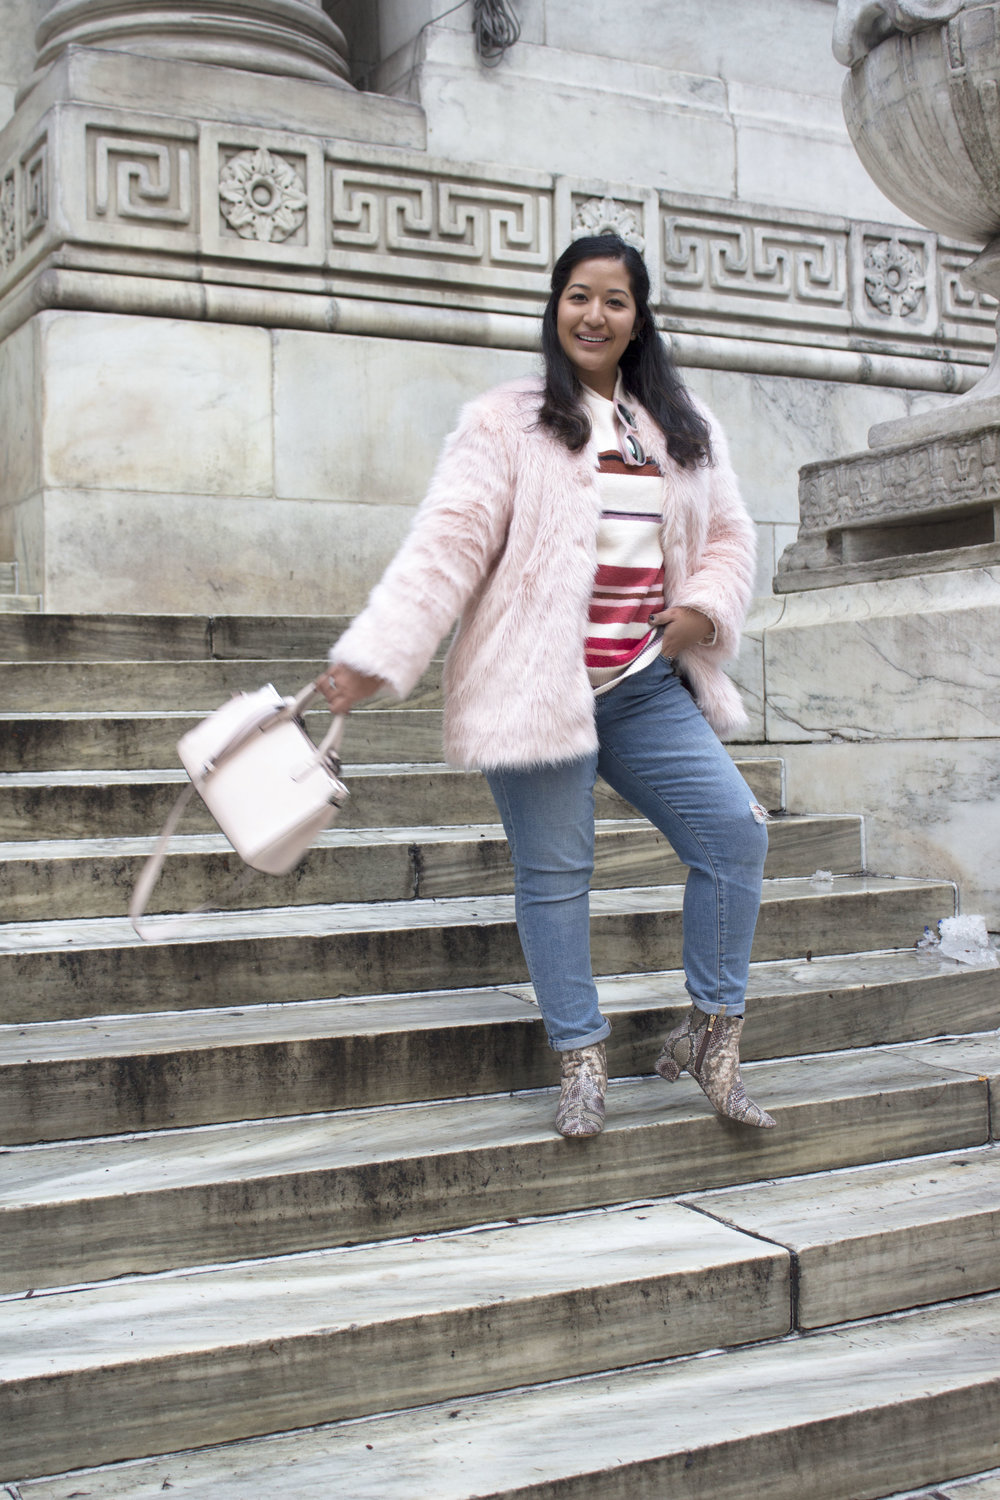 Krity S x Loft Stripe Sweater x Pink Faux Fur x Winter Outfit1.jpg